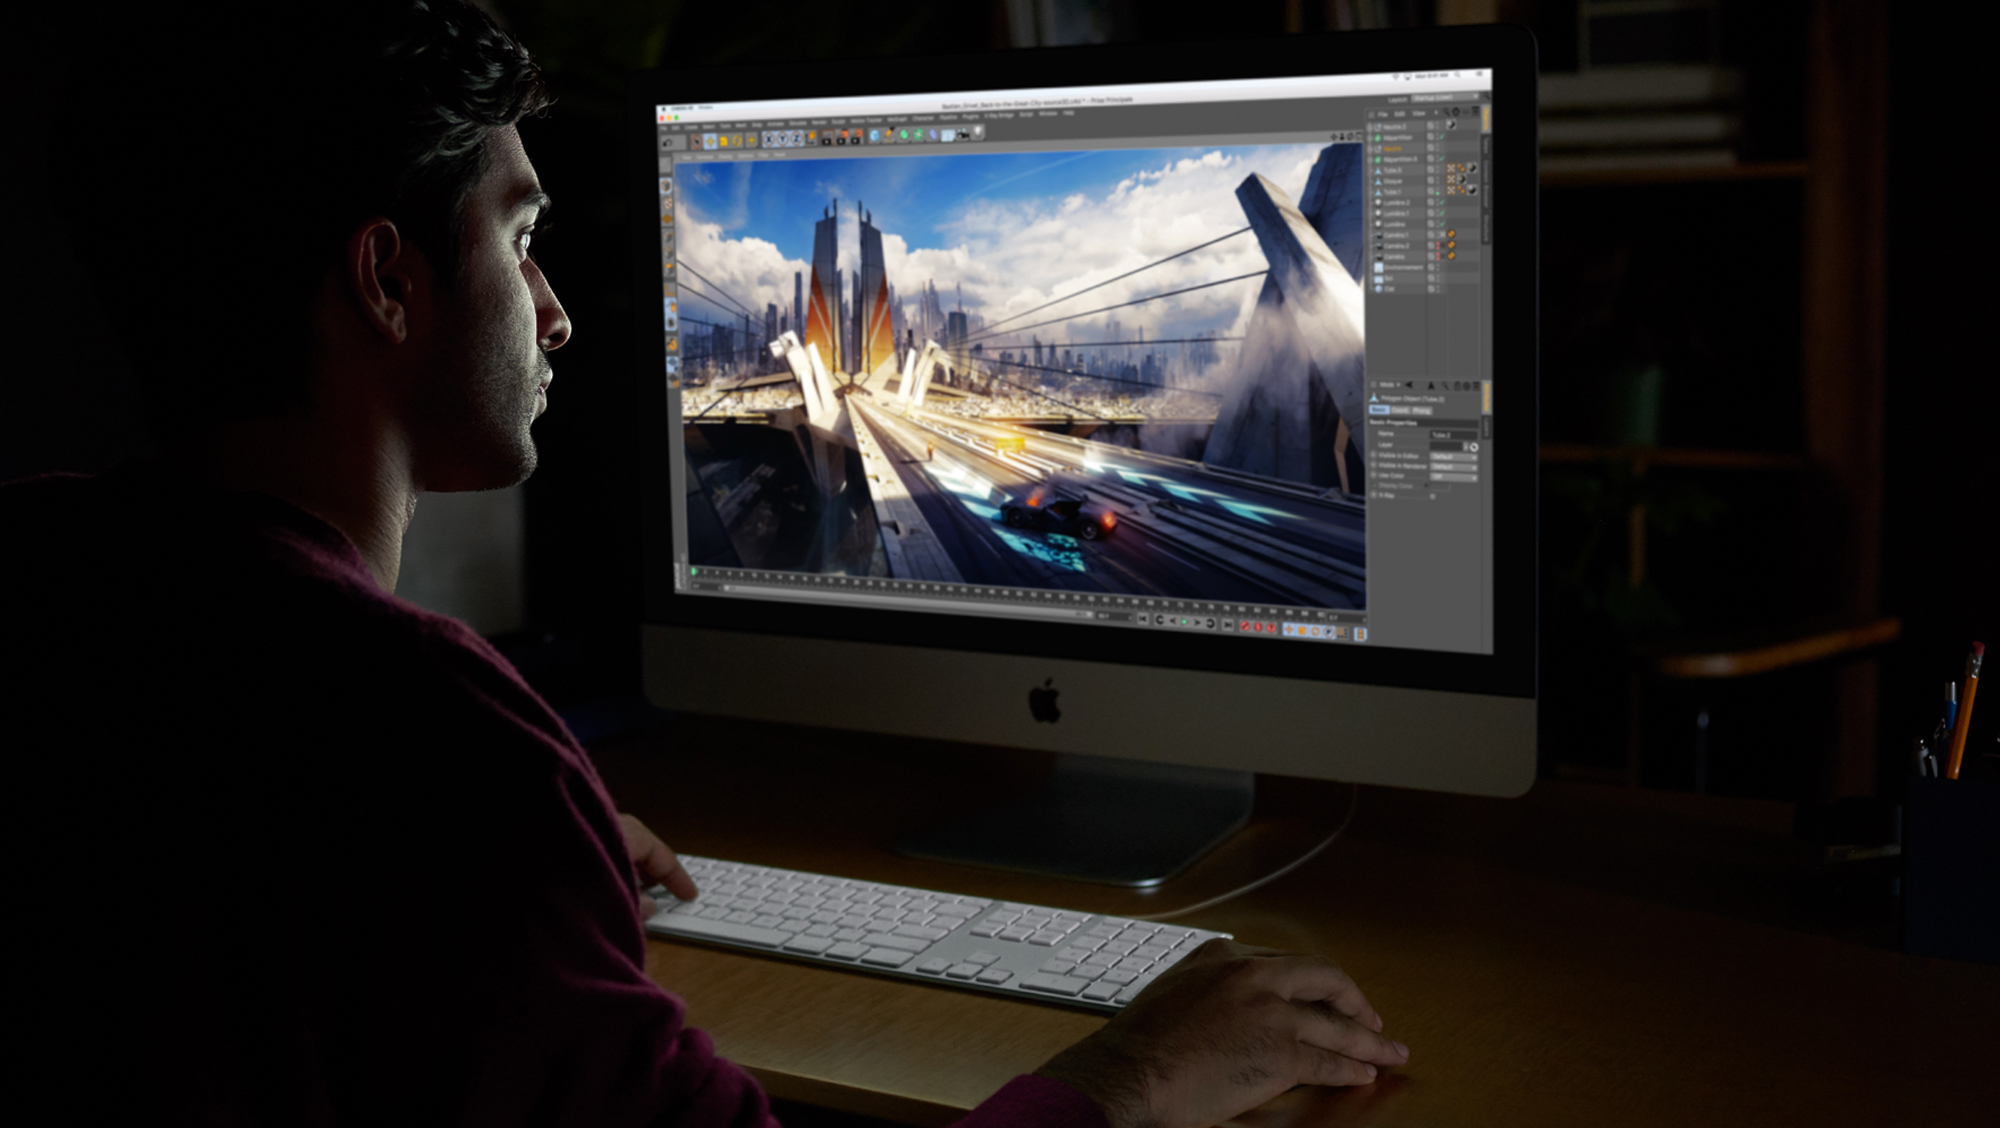 iMac Pro 2017 Video Editing